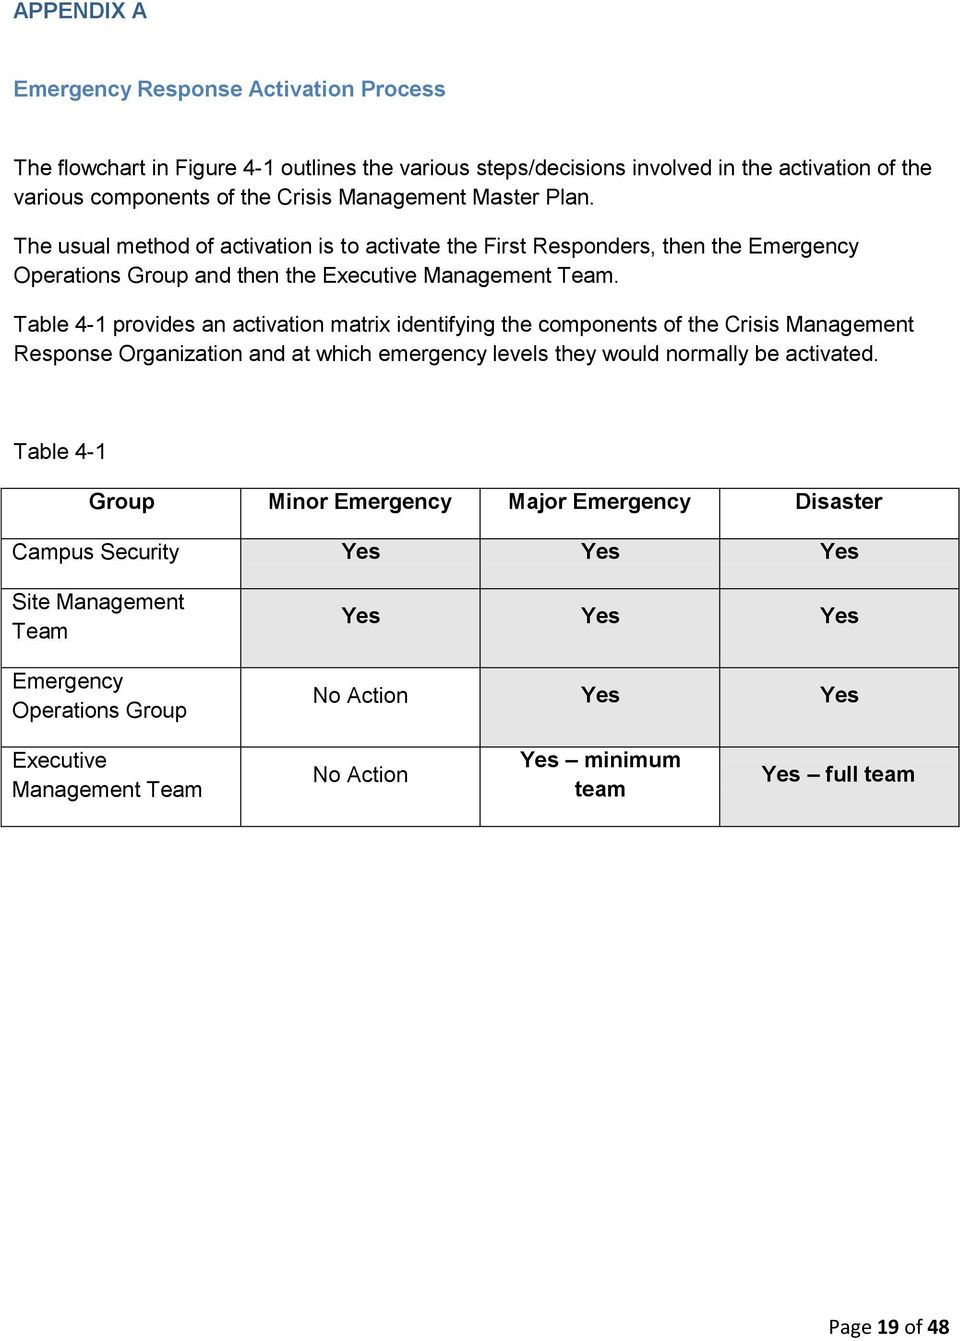 Table 4-1 provides an activation matrix identifying the components of the Crisis Management Response Organization and at which emergency levels they would normally be activated.